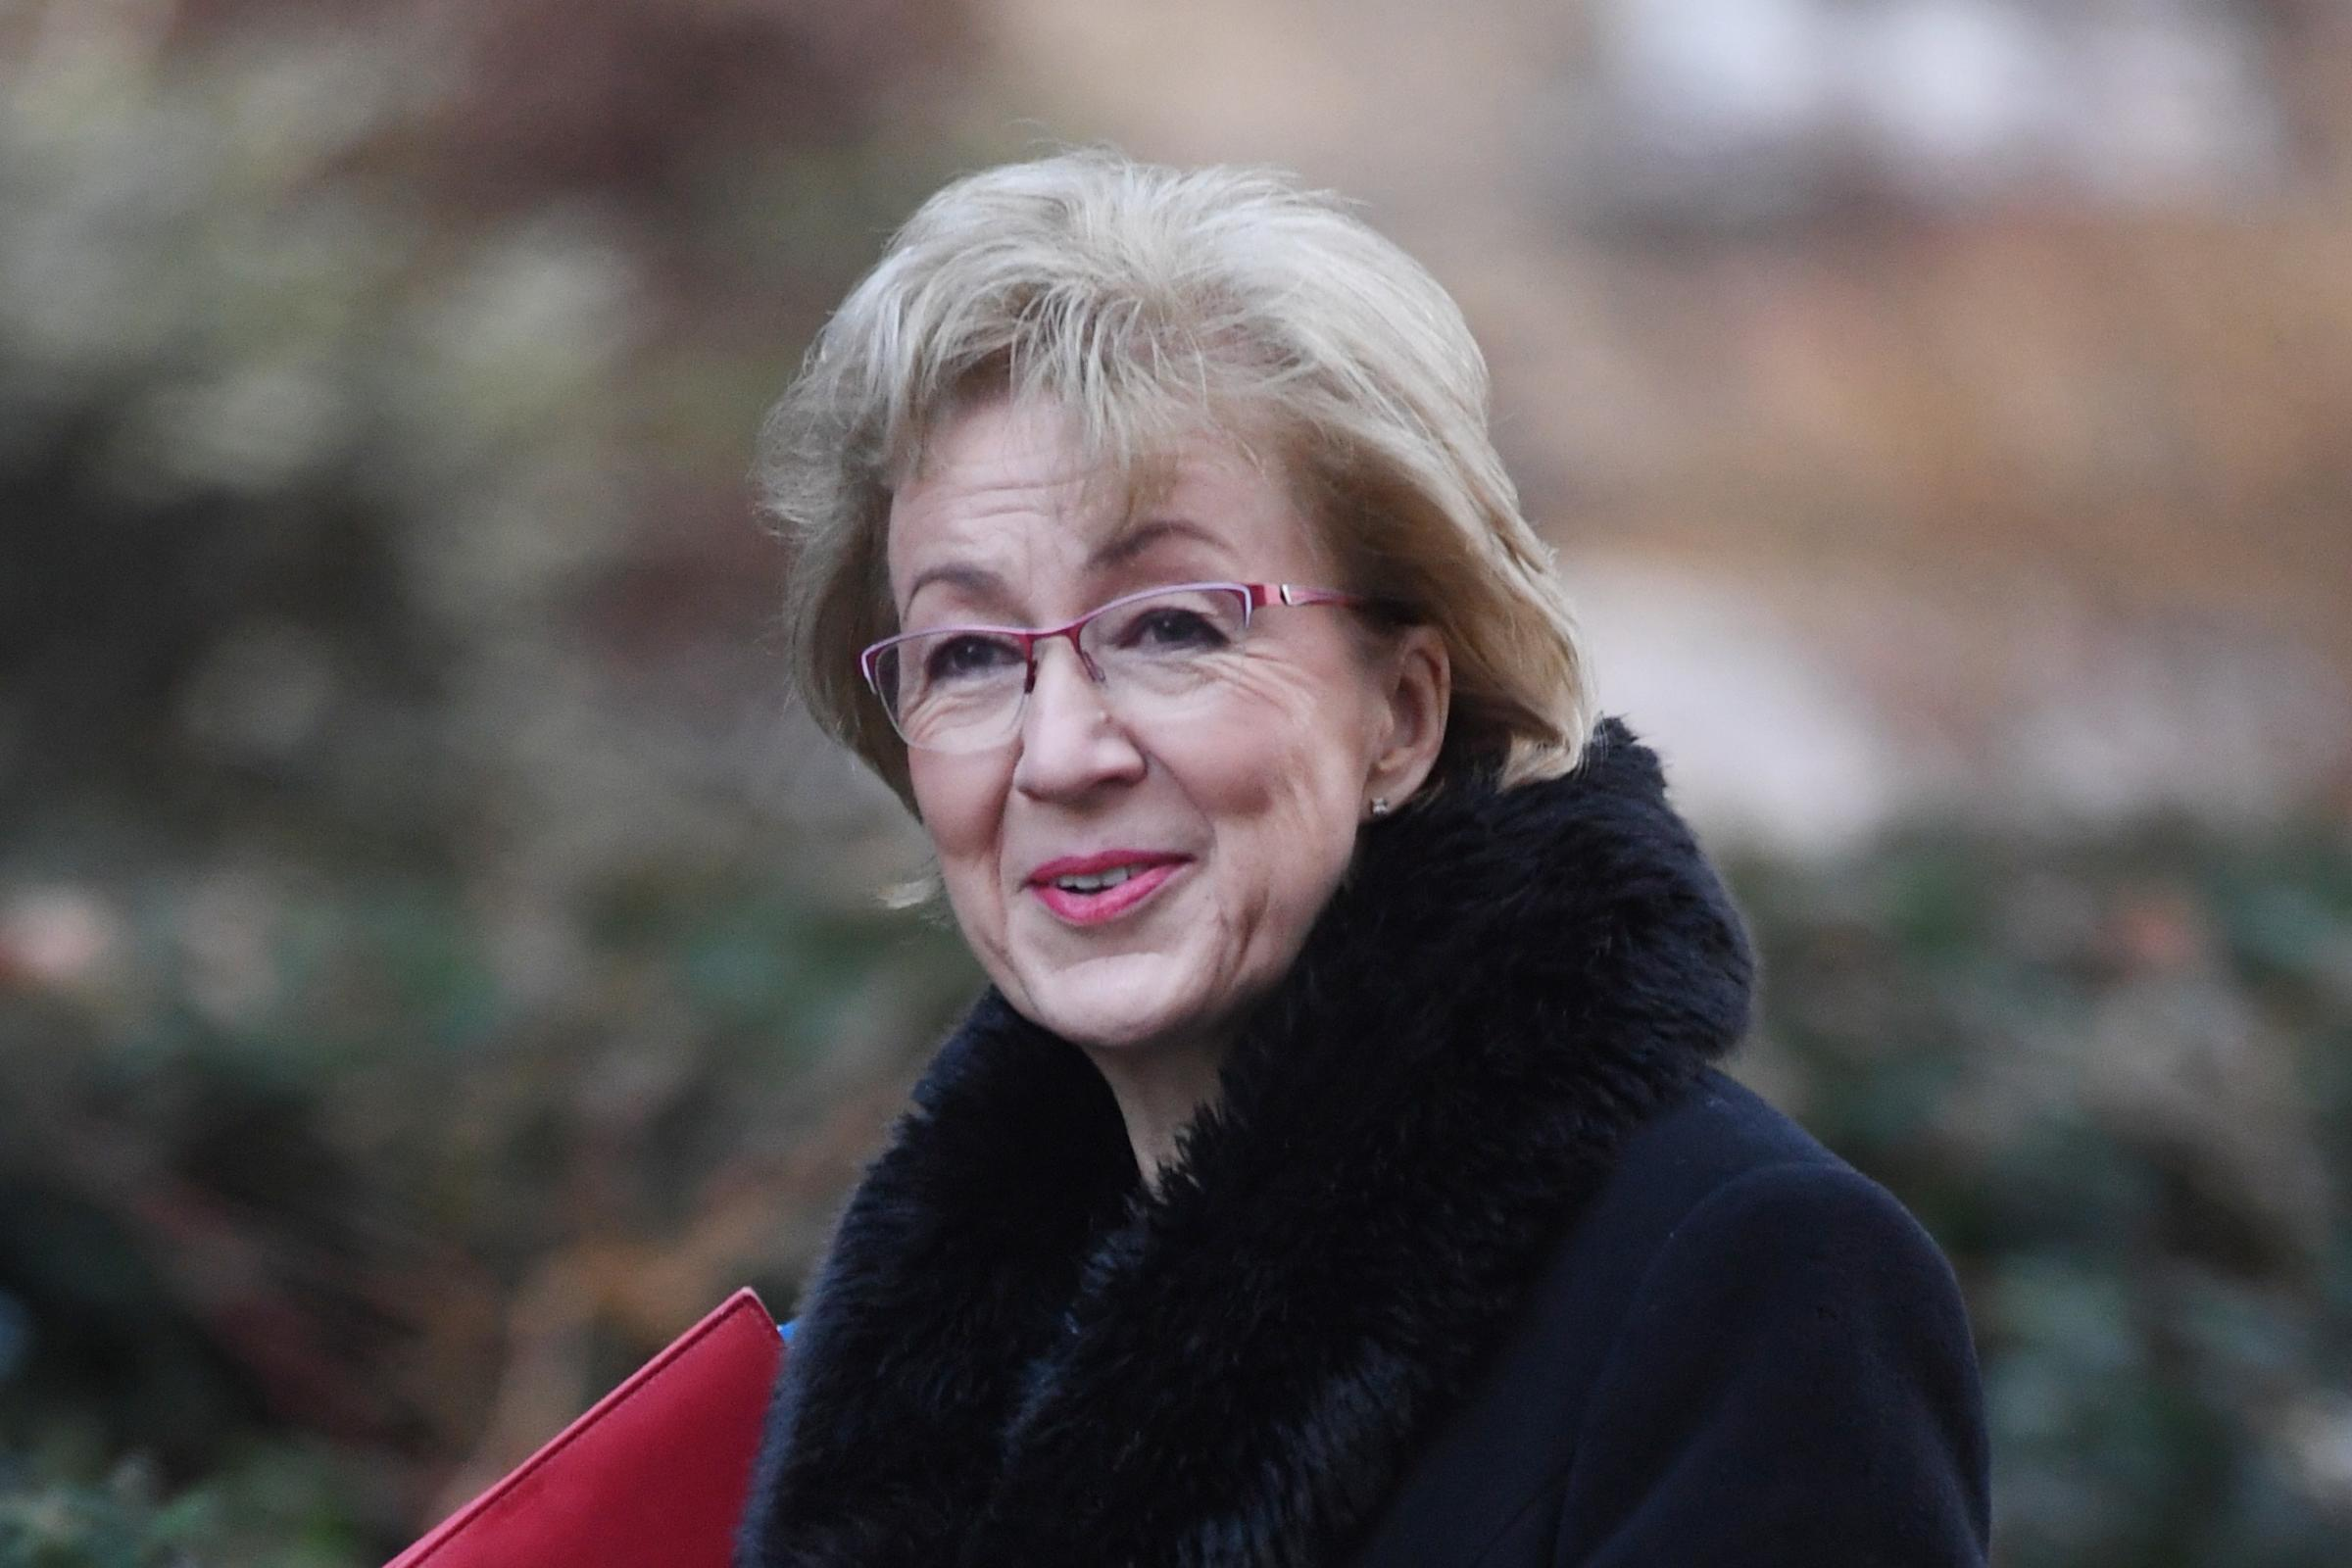 Commons Leader Andrea Leadsom